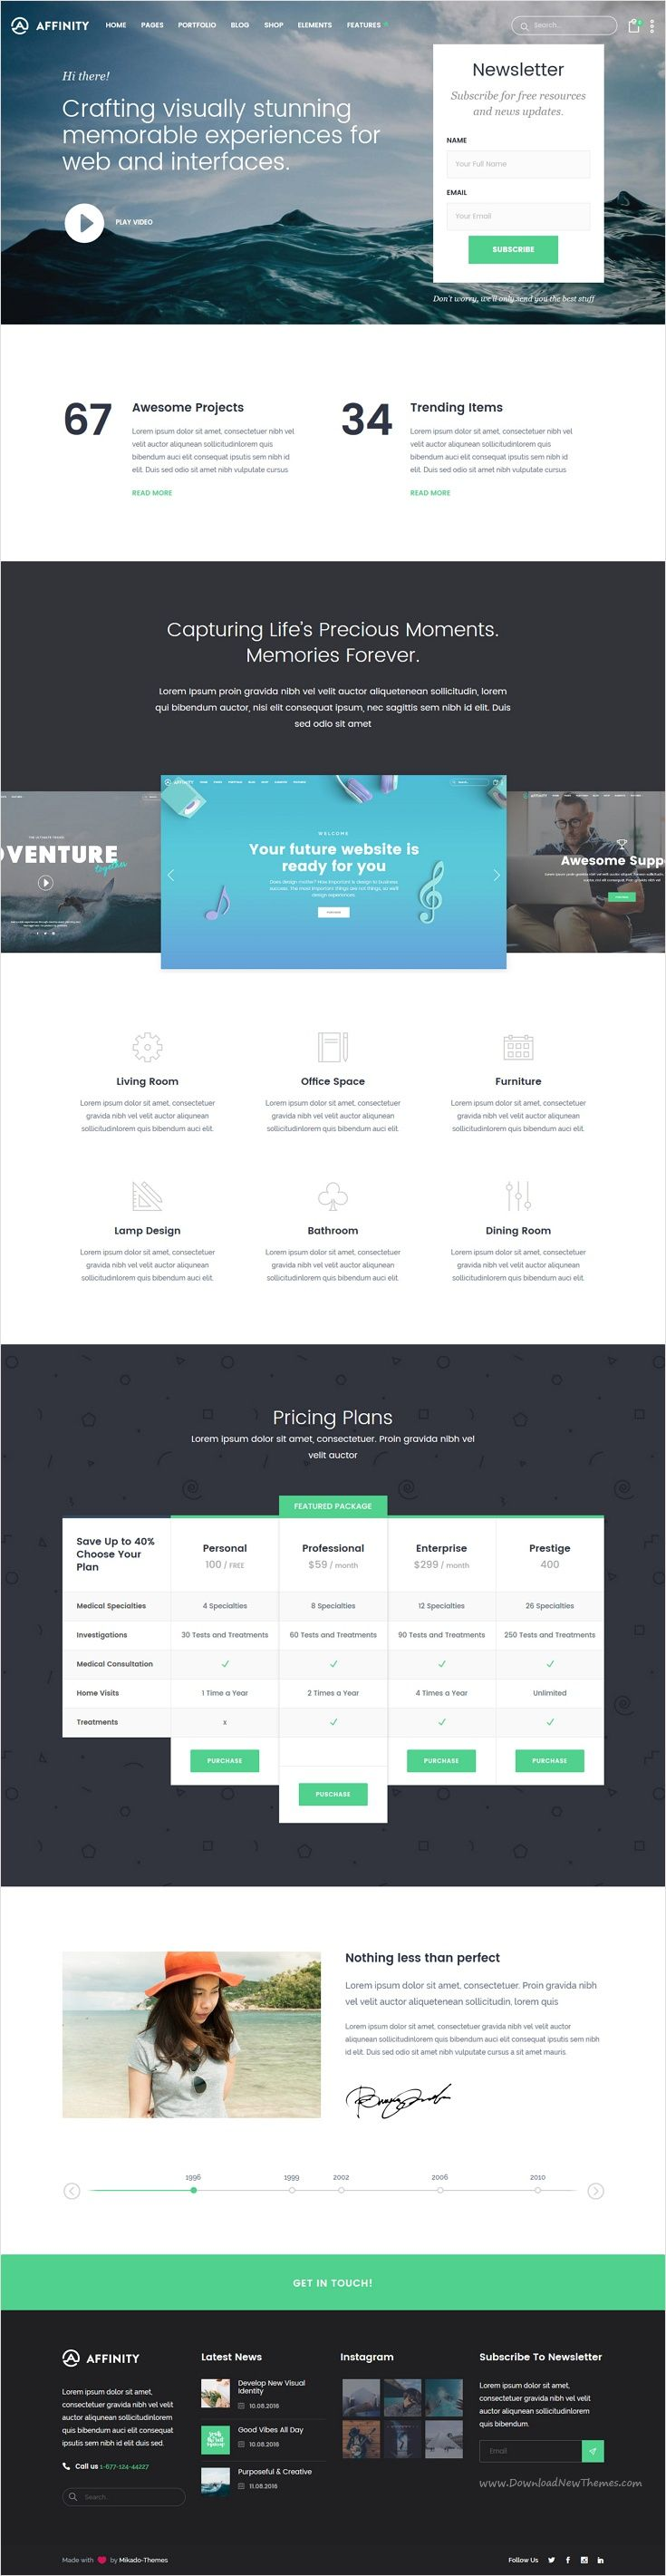 Affinity is a genuinely gigantic and refreshing multipurpose #WordPress theme for #business #office stunning websites with 60+ unique homepage layouts download now➩ https://themeforest.net/item/affinity-a-genuinely-gigantic-refreshing-multipurpose-theme/18105800?ref=Datasata